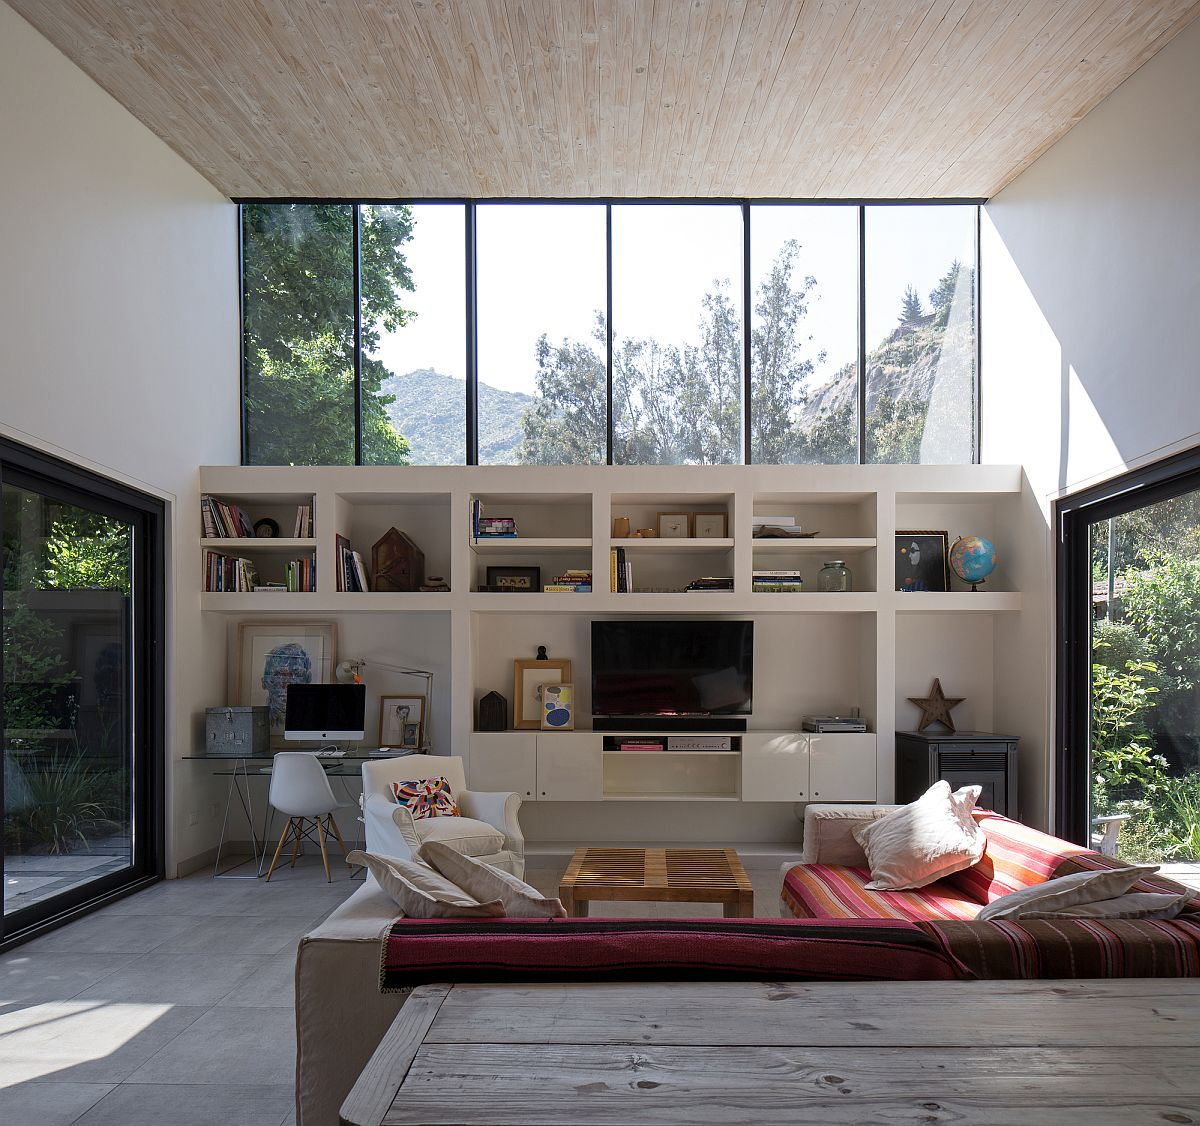 Double-height-living-area-of-the-home-with-clestory-windows-is-full-of-natural-light-19409